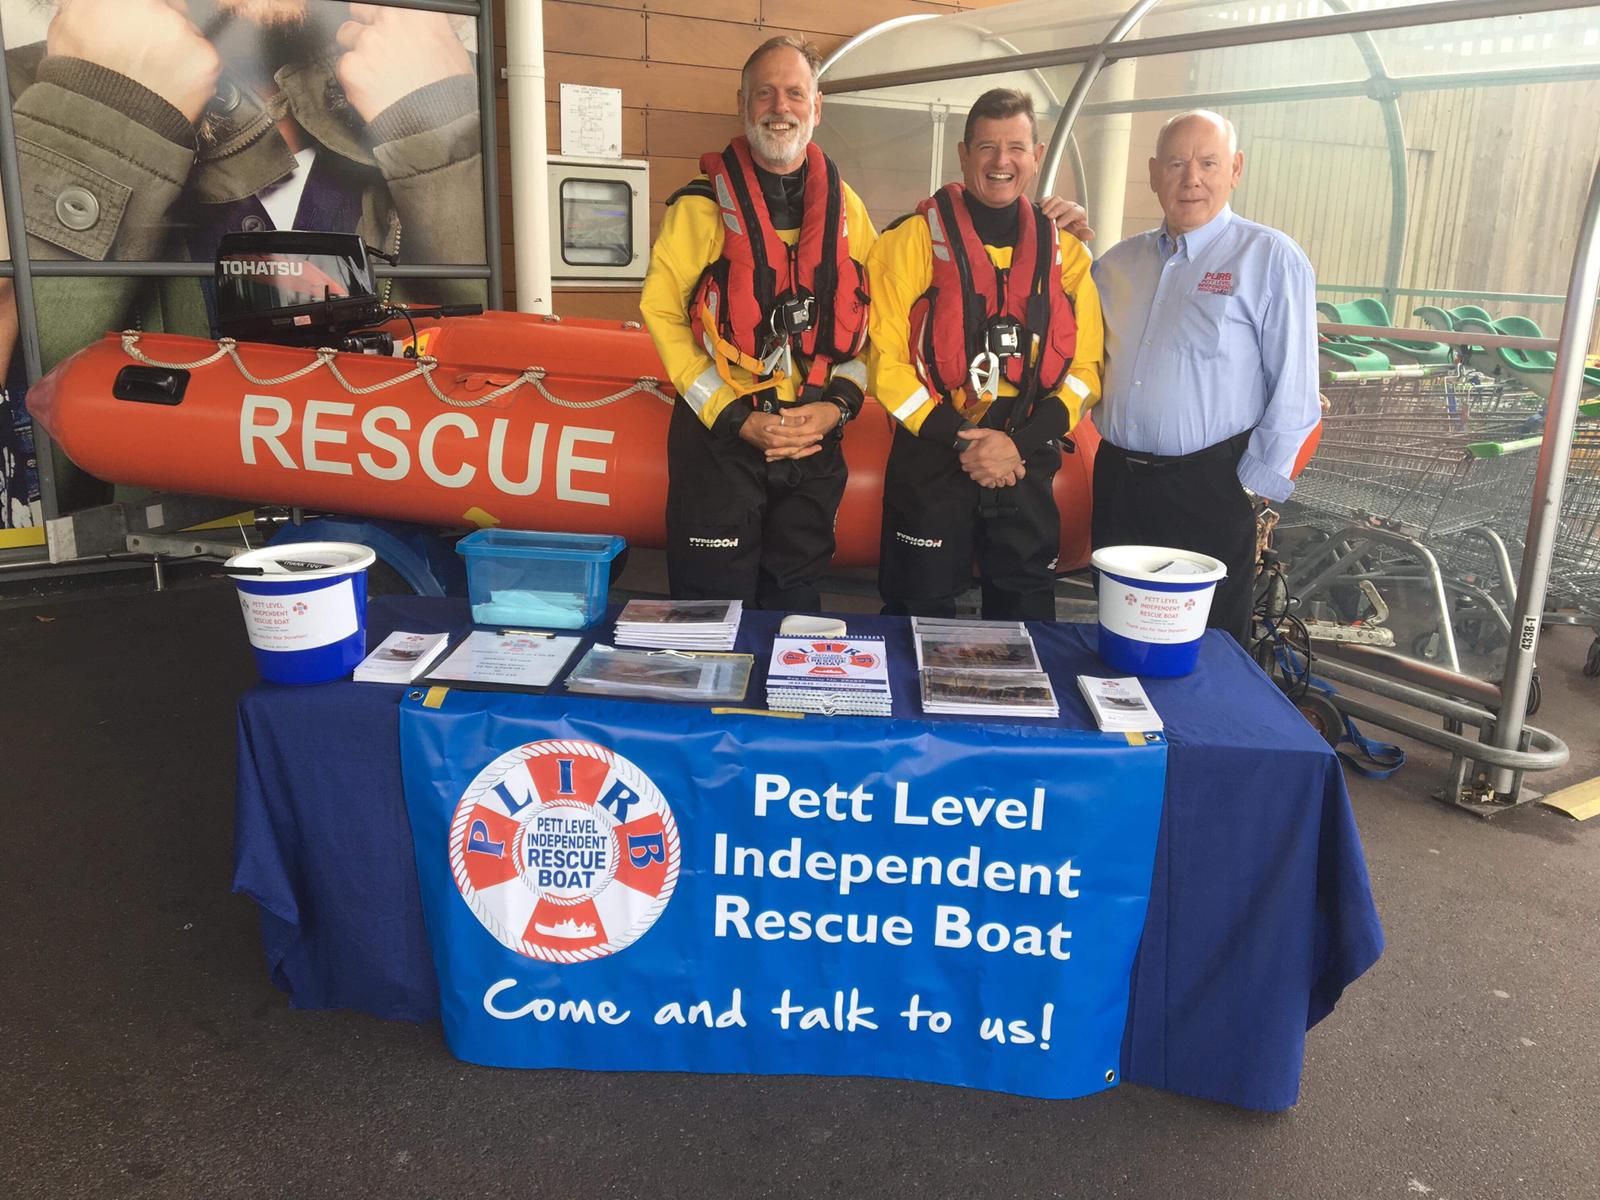 Support from the Community – Asda St. Leonards